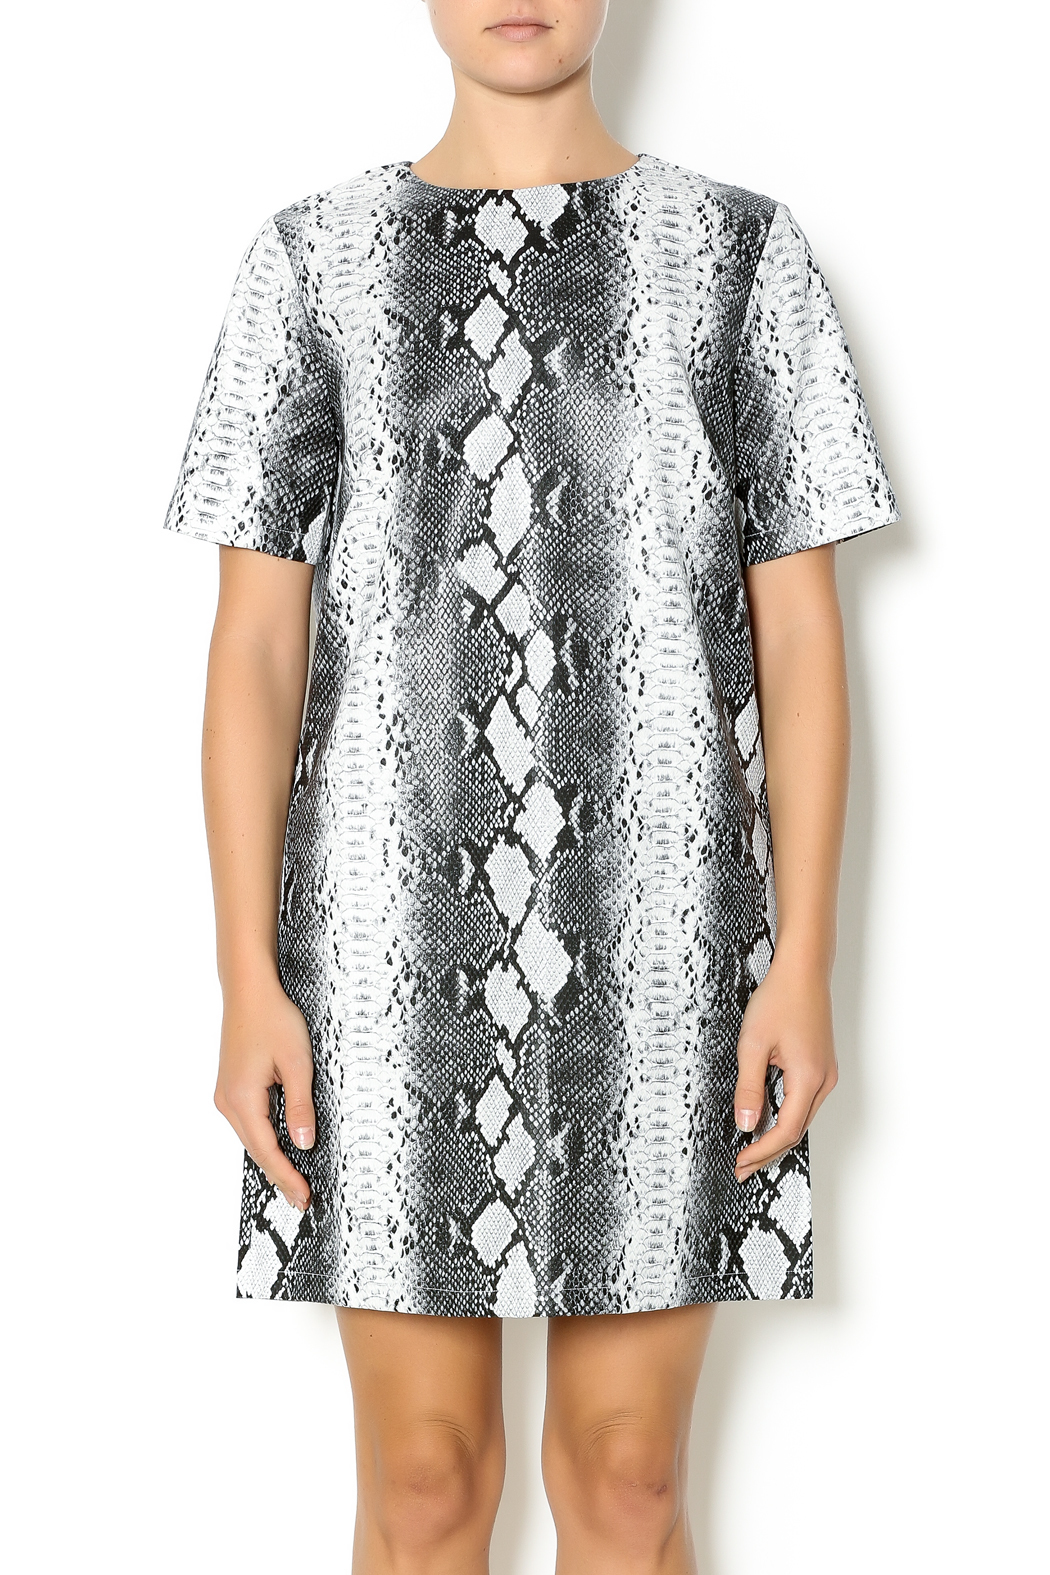 HYPR Snake Print Dress From Chicago By Blush Boutique U2014 Shoptiques